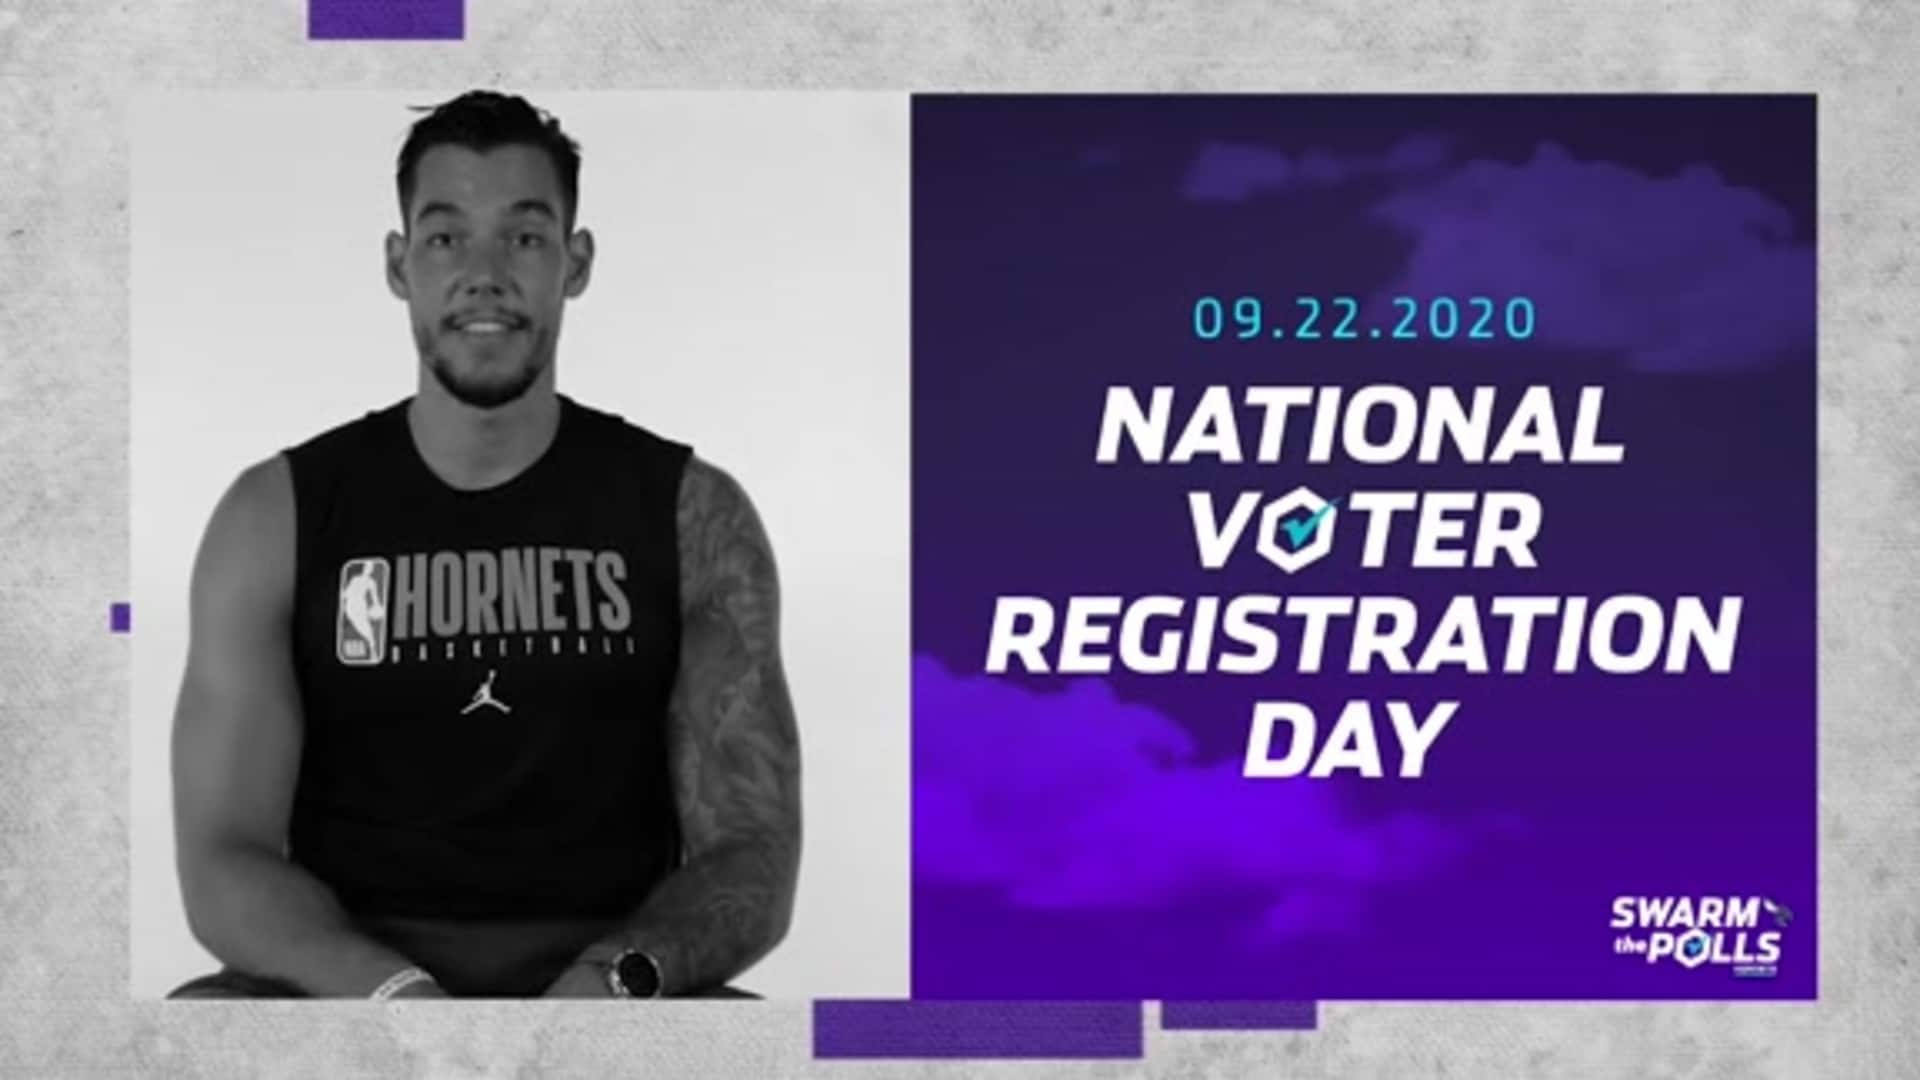 Swarm the Polls | National Voter Registration Day